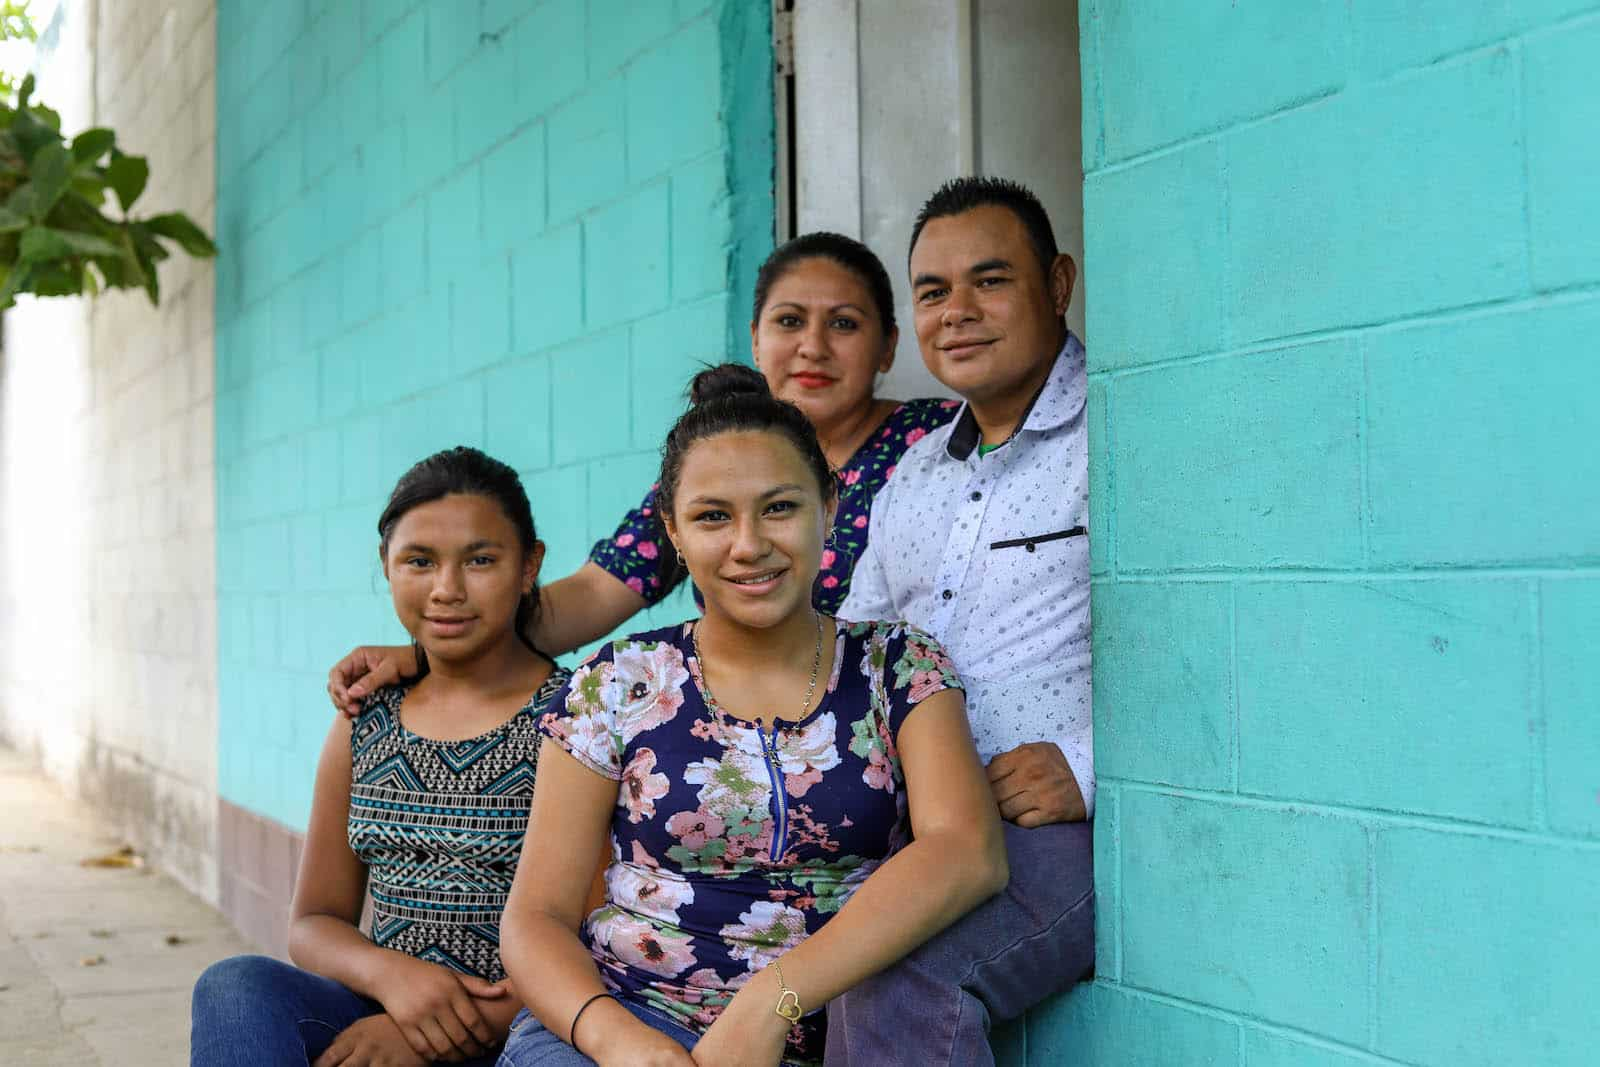 A family of four sits on the doorstep of a turquoise painted home.